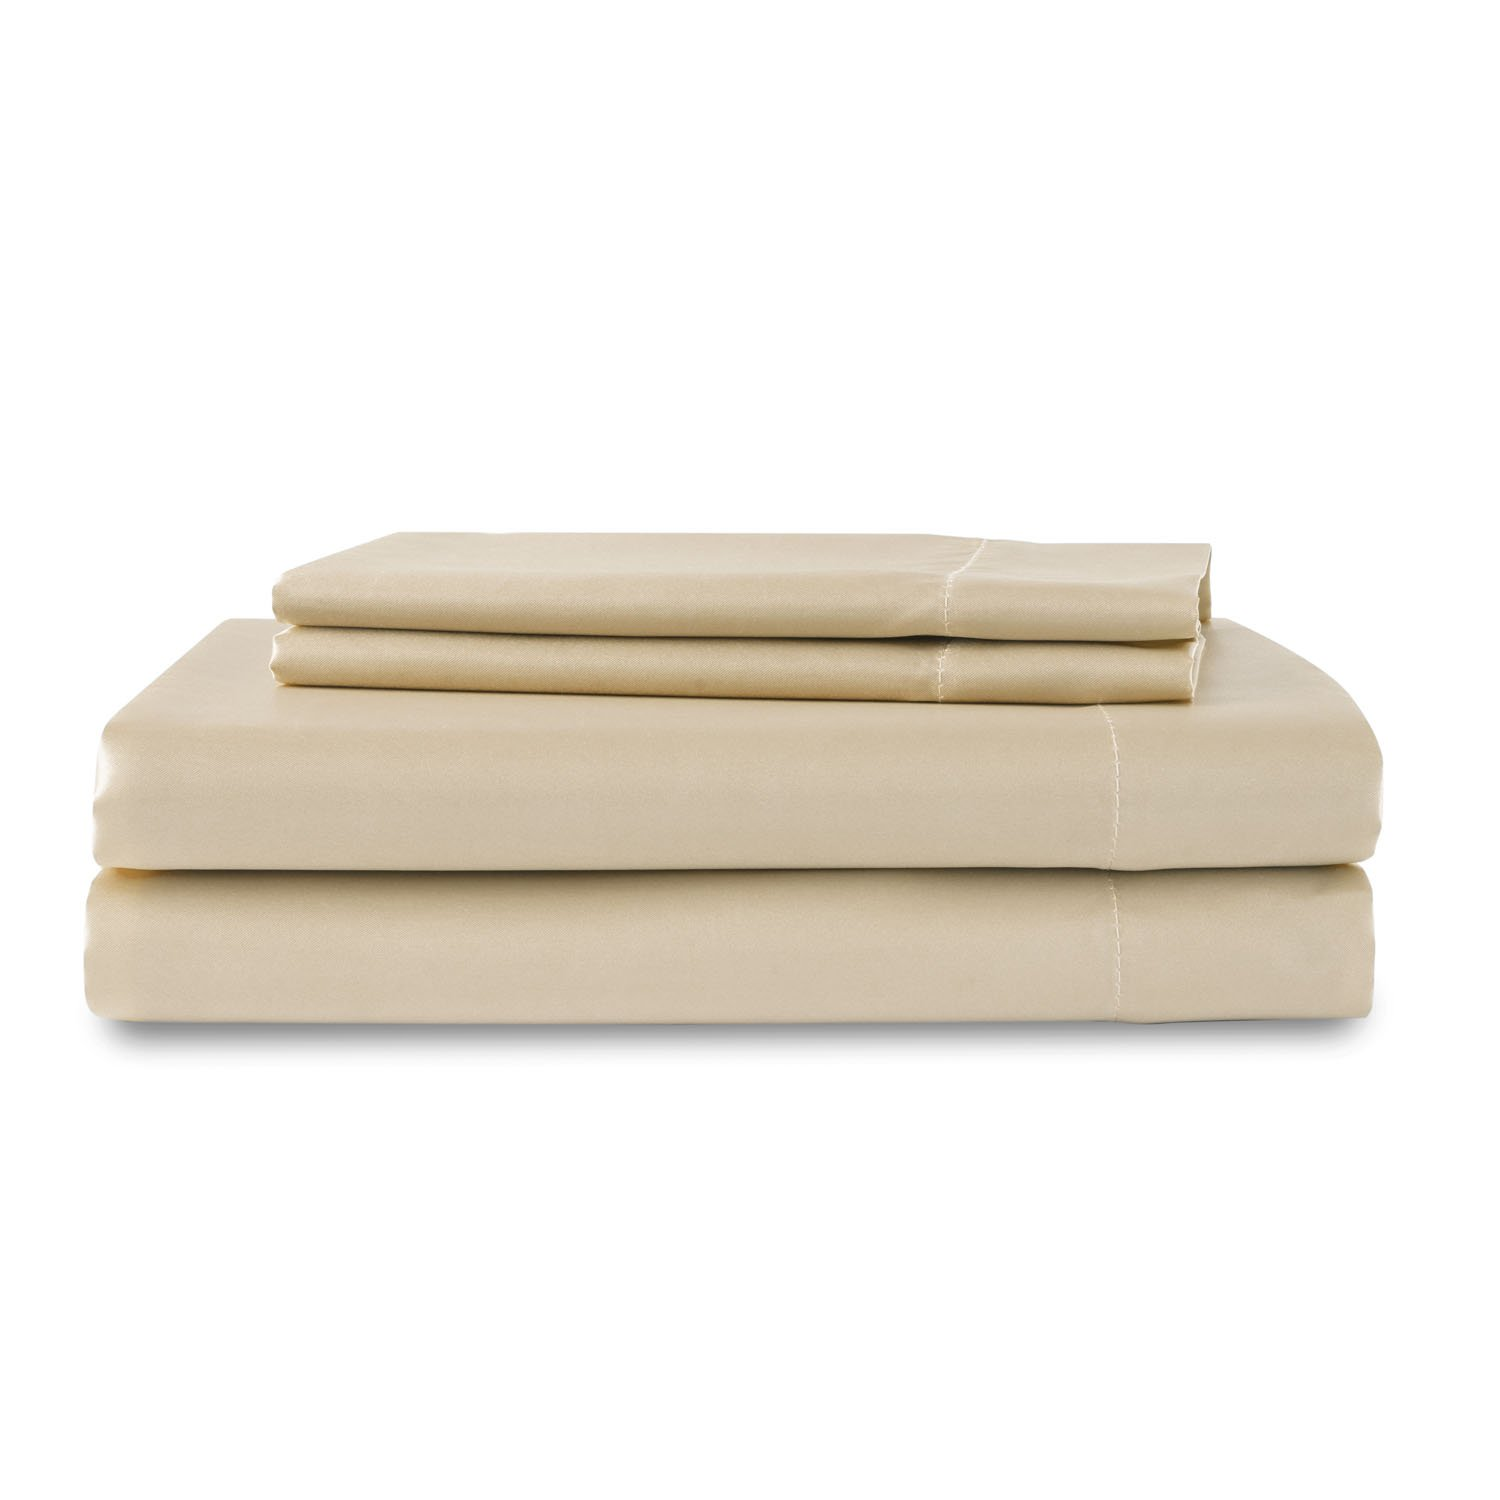 Sweet Dreams Silky Satin Flat Sheet - Twin, Ivory, Wrinkle Free and Stain Resistant Super Soft Luxury Satin Bed Sheets